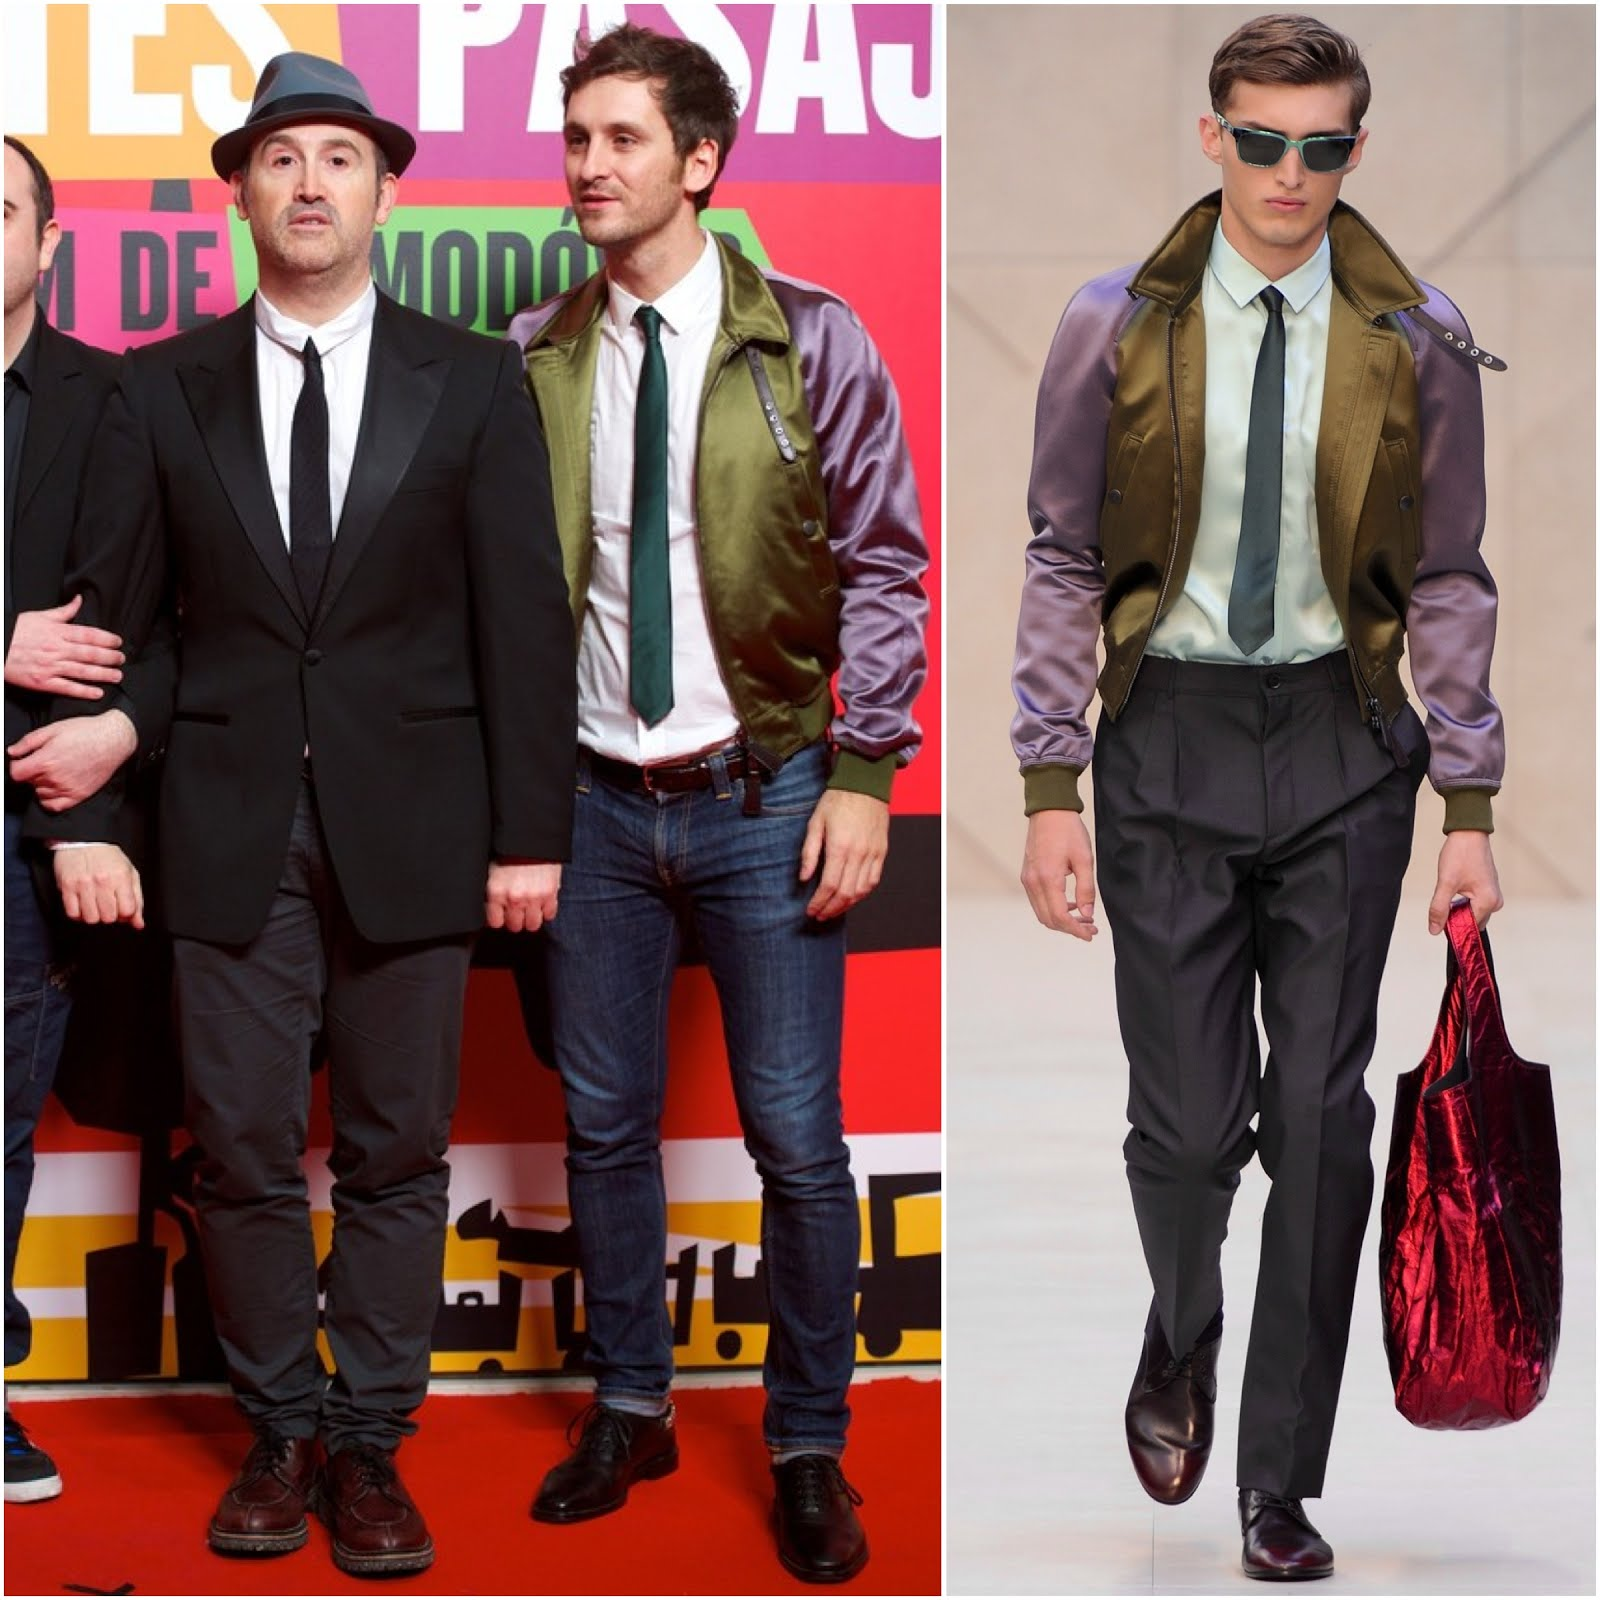 00O00 Menswear Blog Raul Arevalo in Burberry Prorsum -